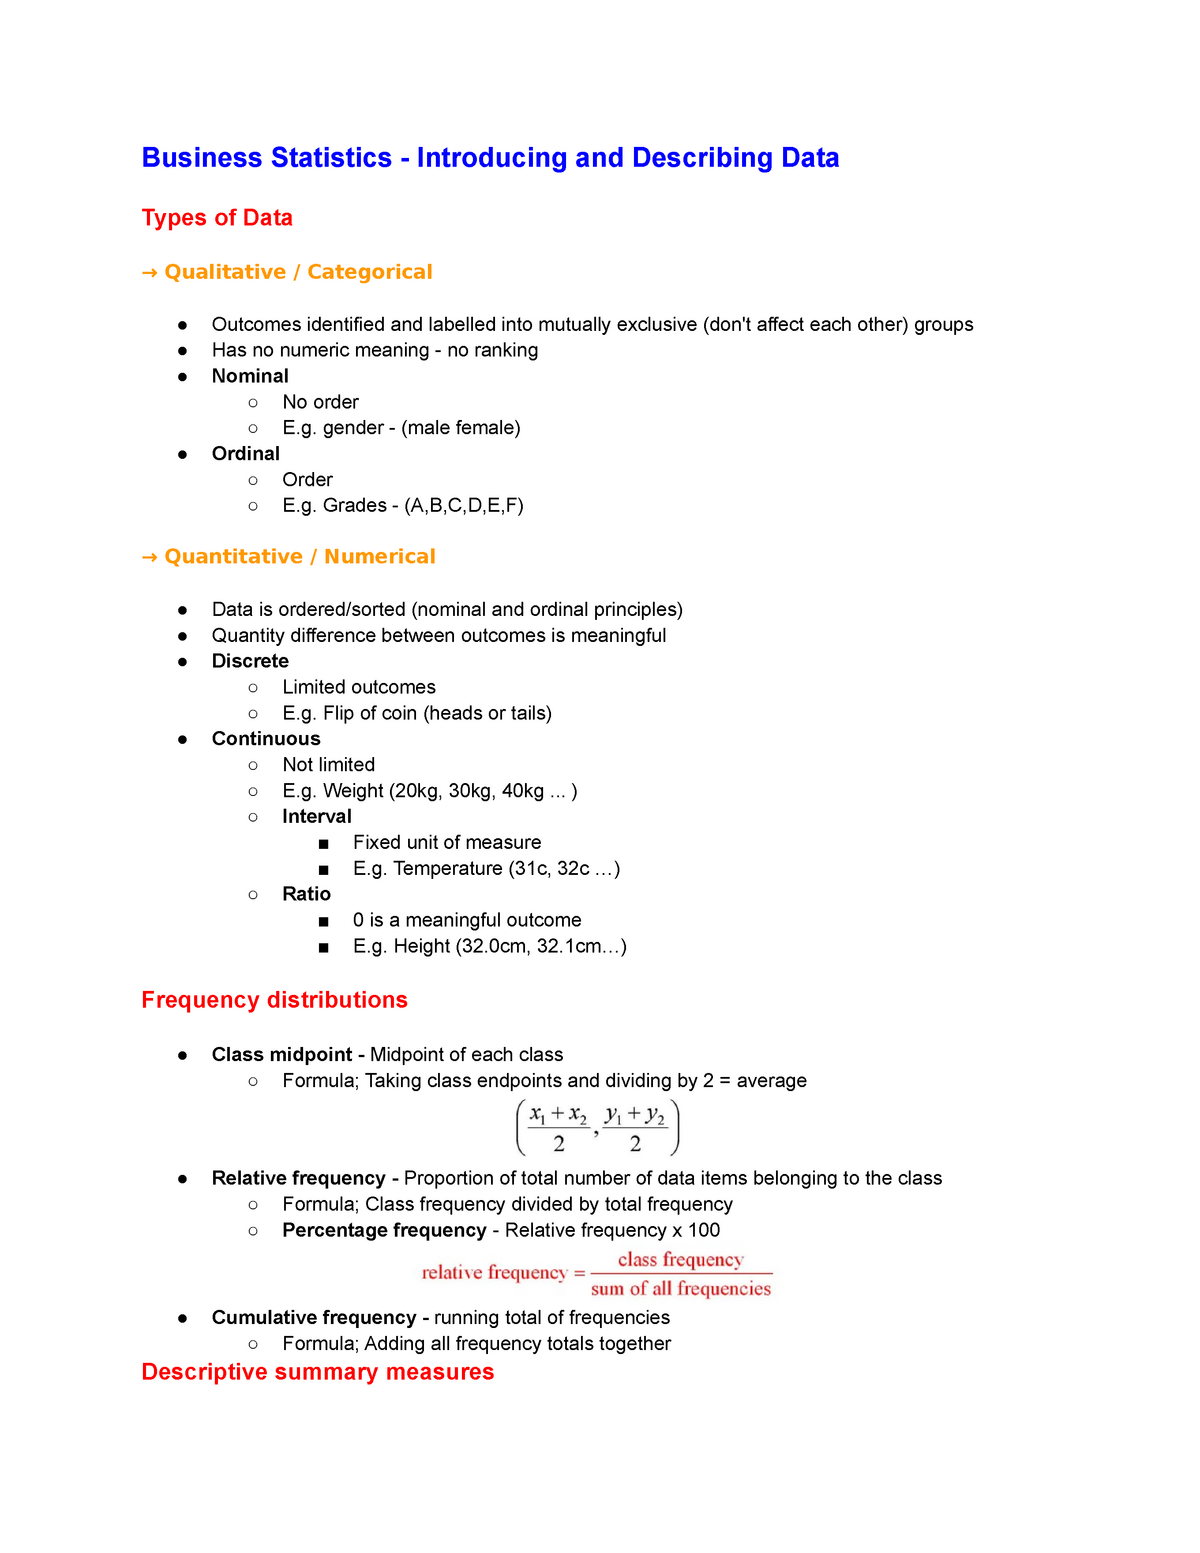 BStats Notes - Chap 1-3 - 021743 Business Excellence - UTS